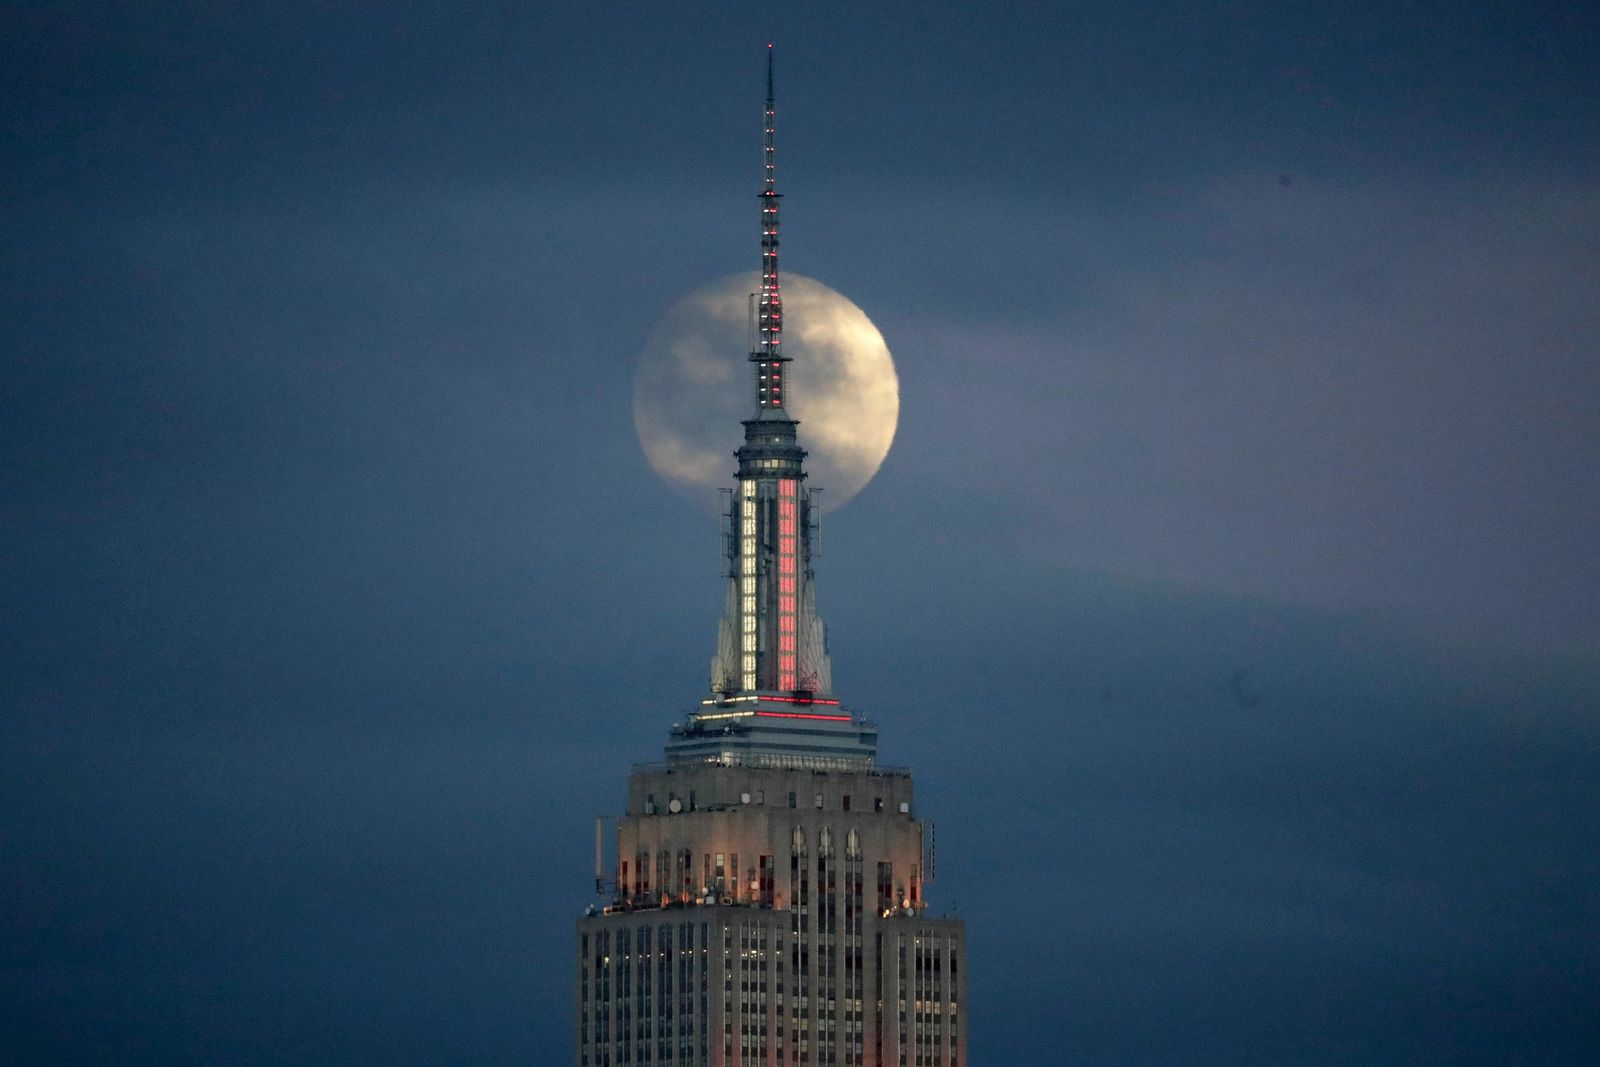 The moon is seen in its waxing gibbous stage as it rises behind the Empire State Building, Sunday, Jan. 20, 2019, seen from Jersey City, N.J. The moon will experience a lunar eclipse, when the earth moves directly between the sun and the moon, and will be seen across the United States late Sunday night. (AP Photo/Julio Cortez)